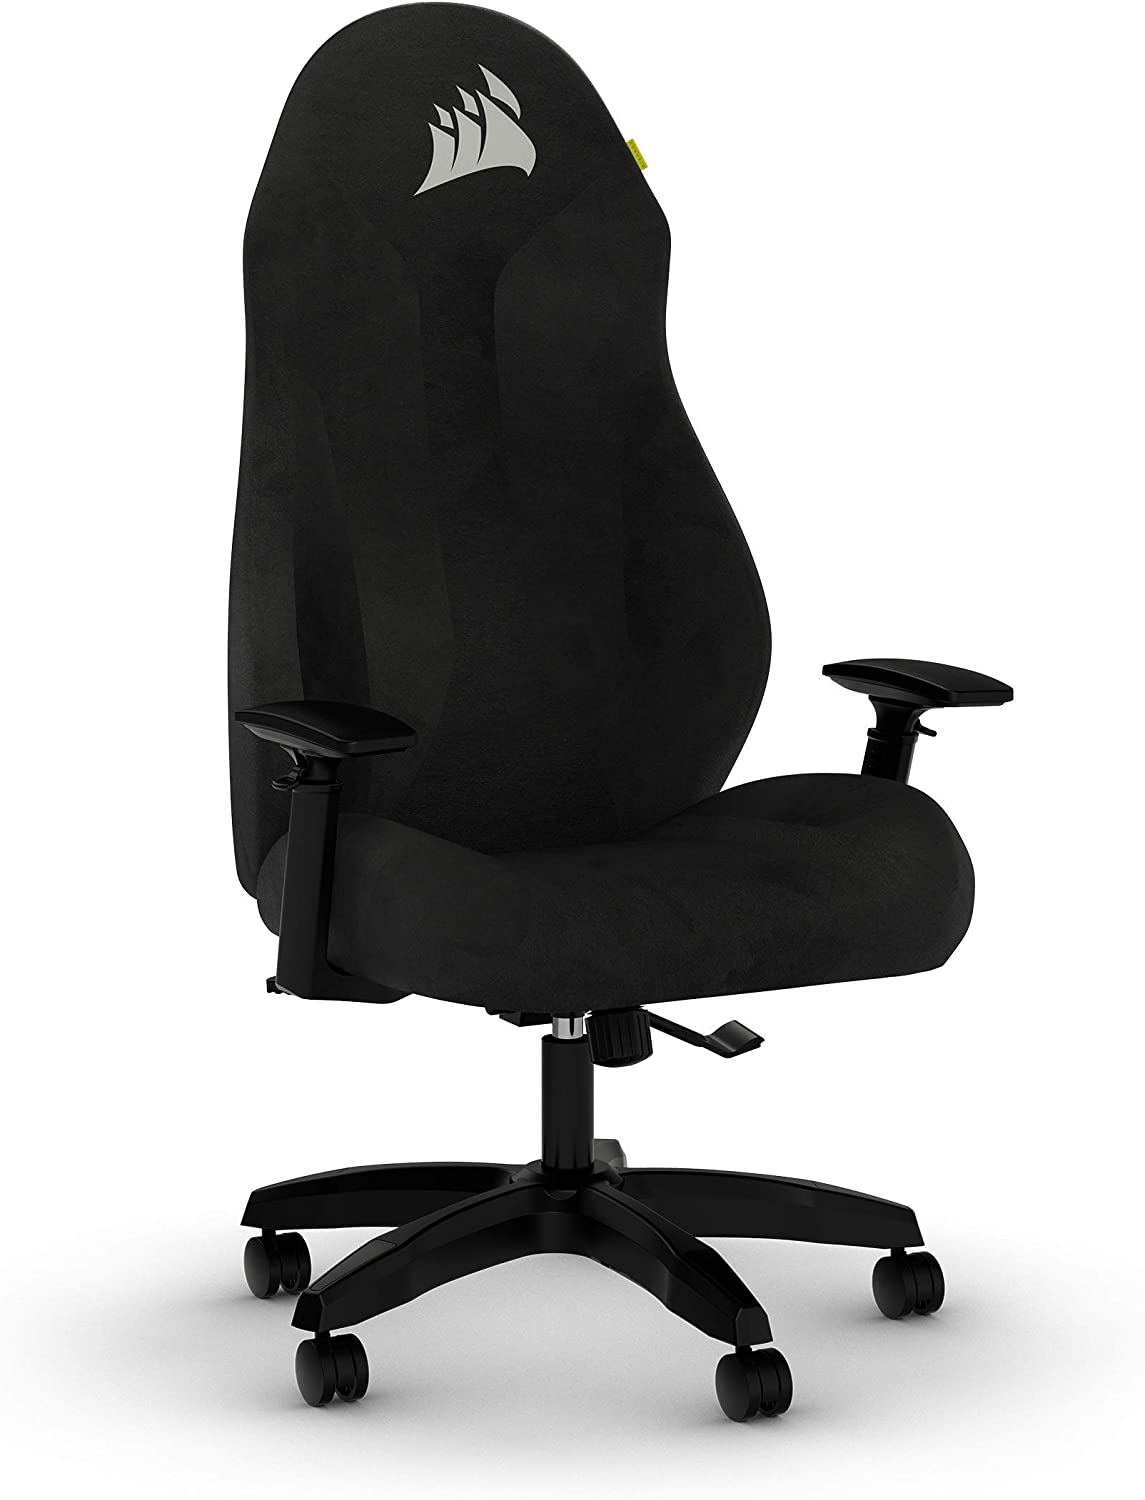 CORSAIR TC60 Selling and selling Fabric Gaming Super special price Chair Fit - Black Relaxed